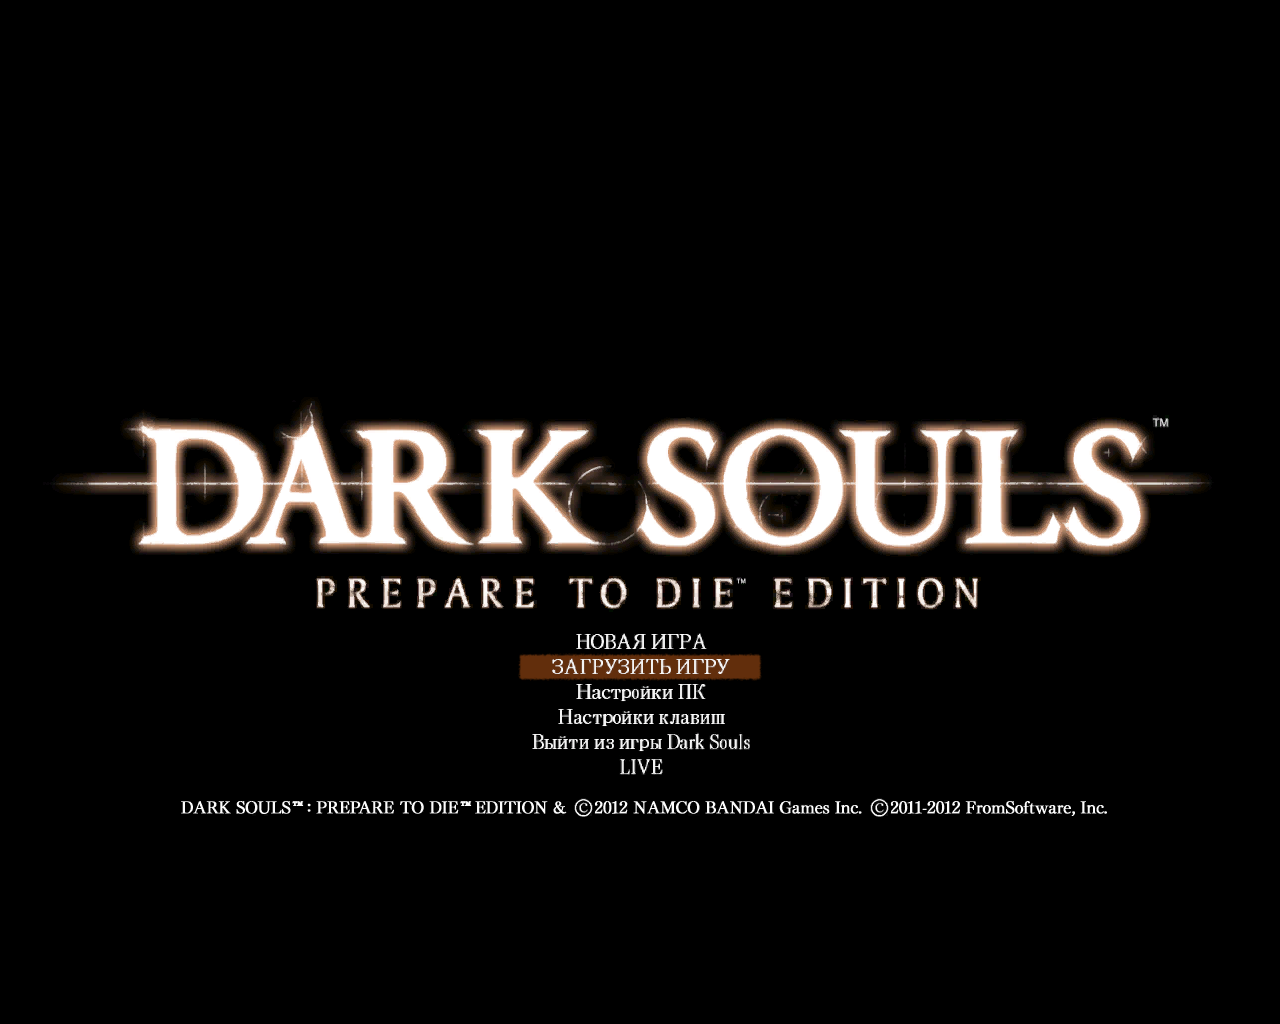 Dark Souls: Prepare to Die Edition Windows Title screen and main menu (Russian version)